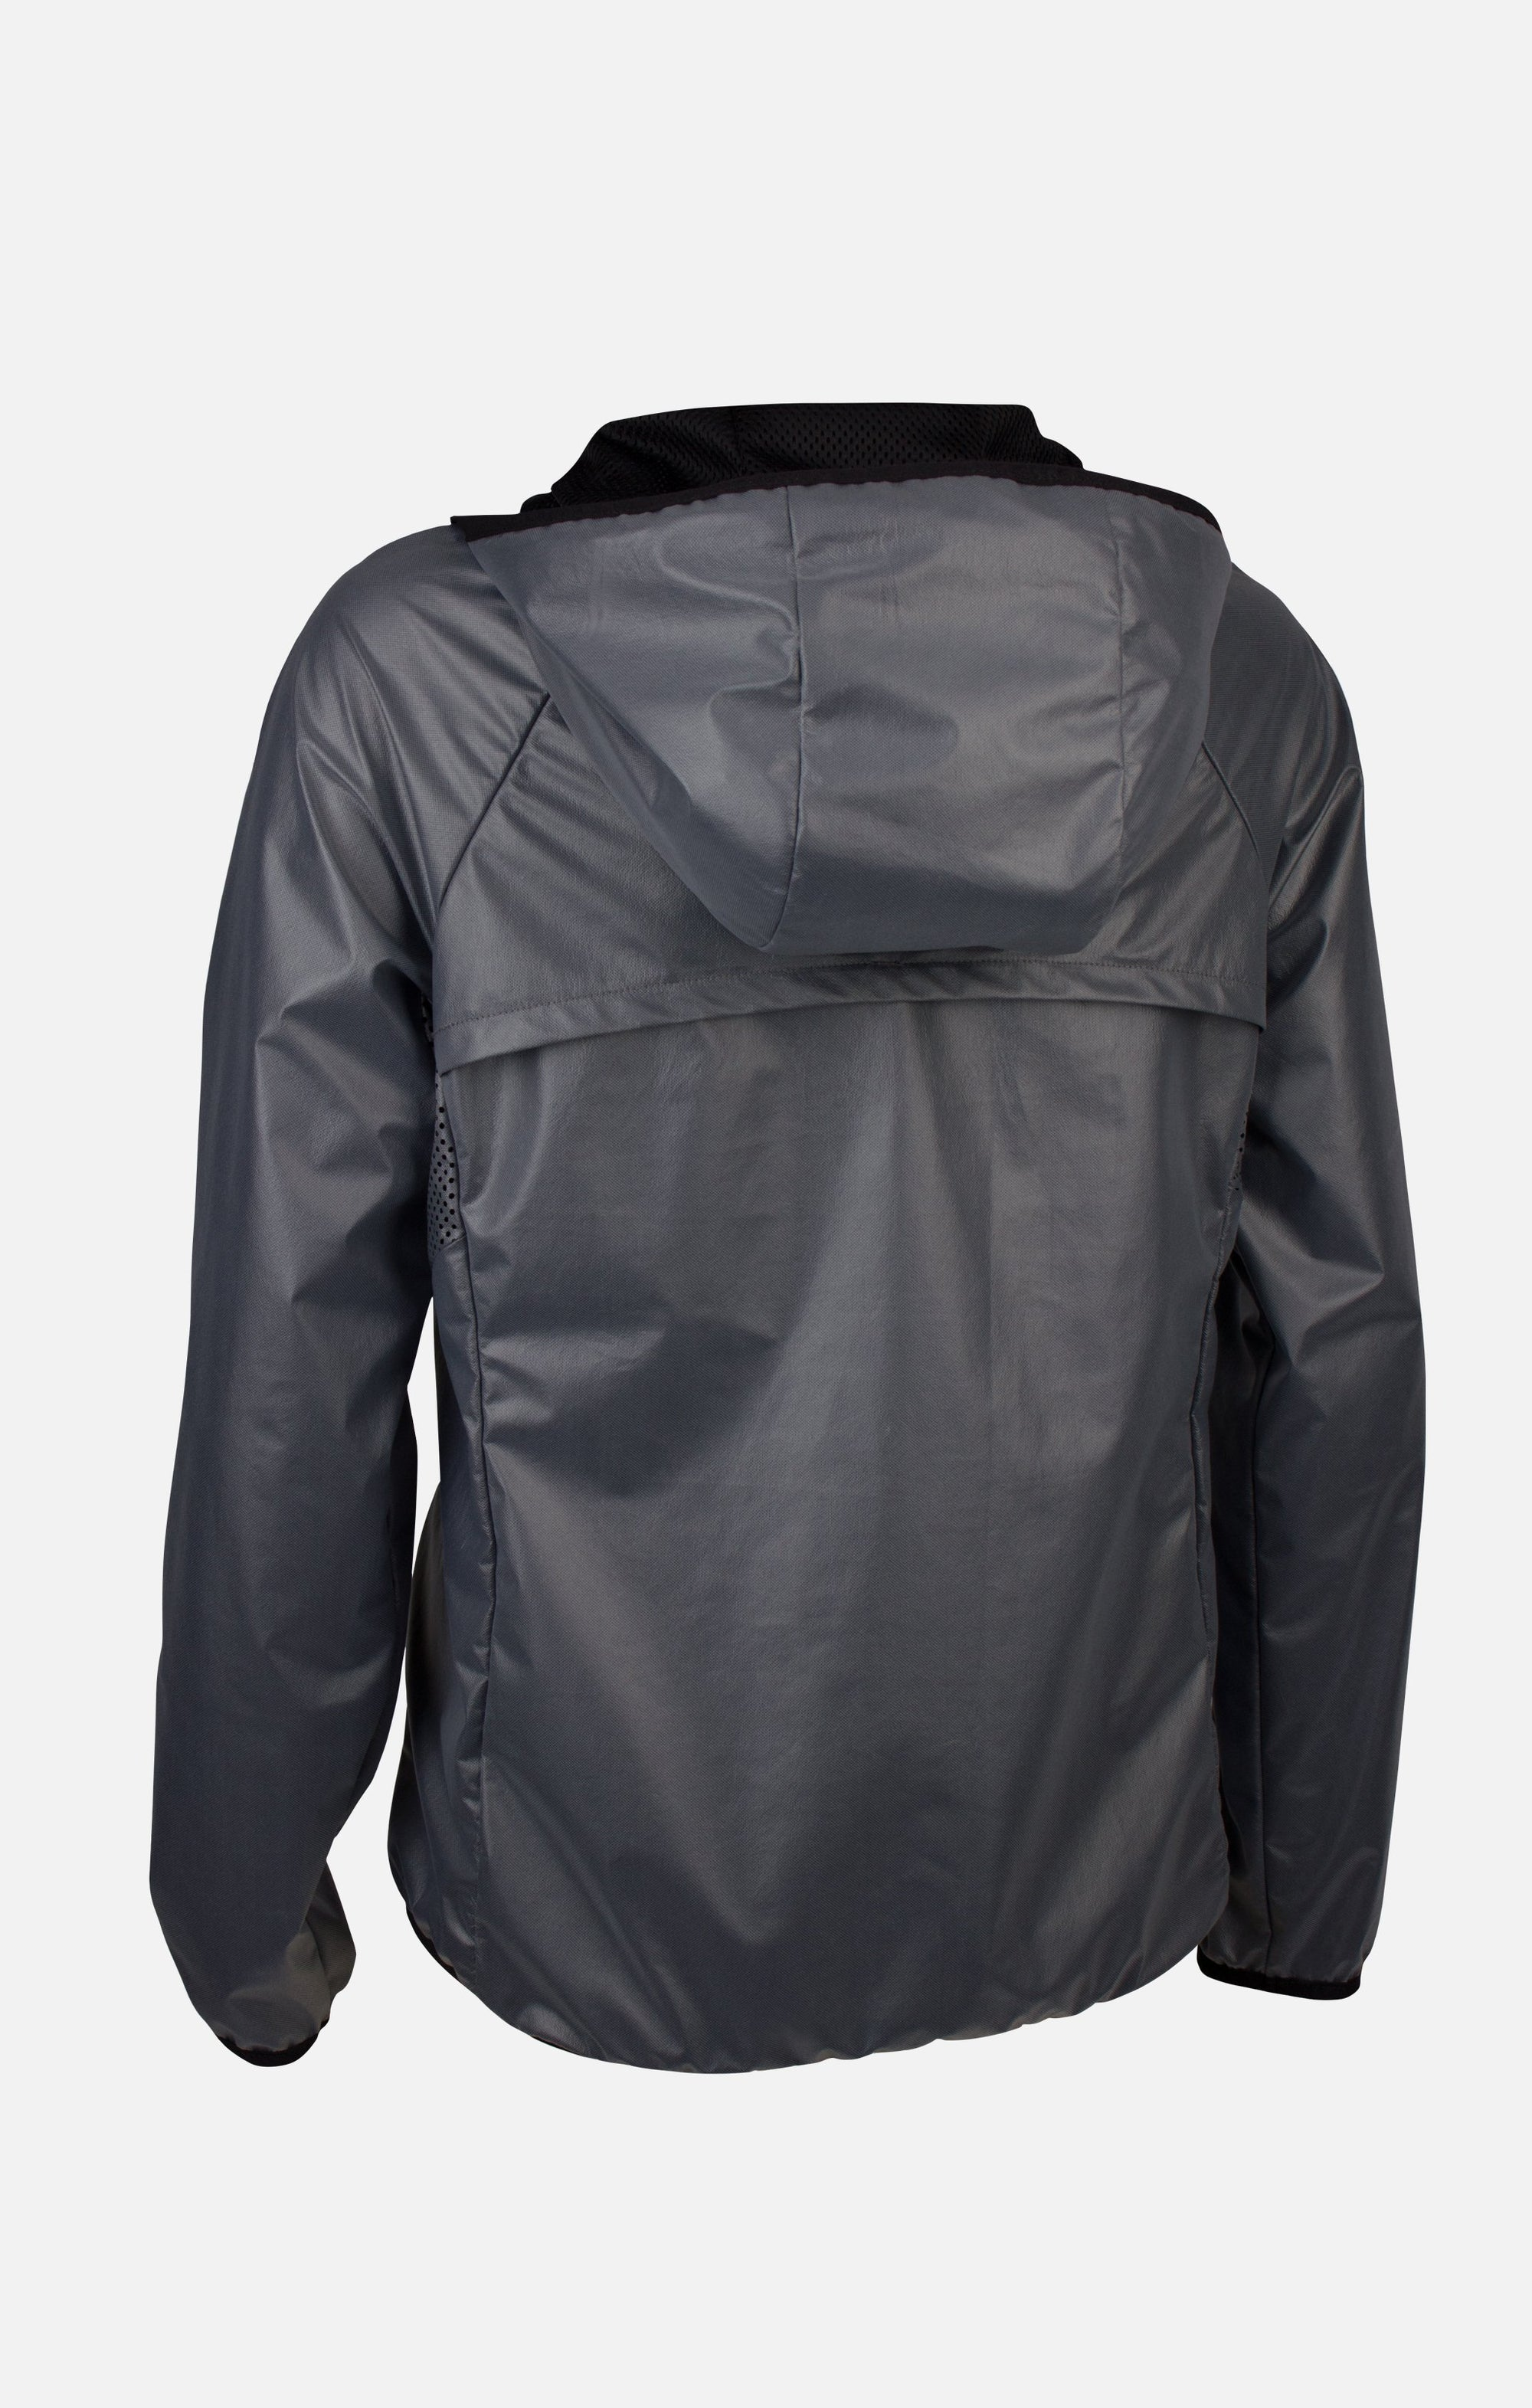 OGNX - Windbreaker - 100% Recycled Polyester - Weekendbee - sustainable sportswear